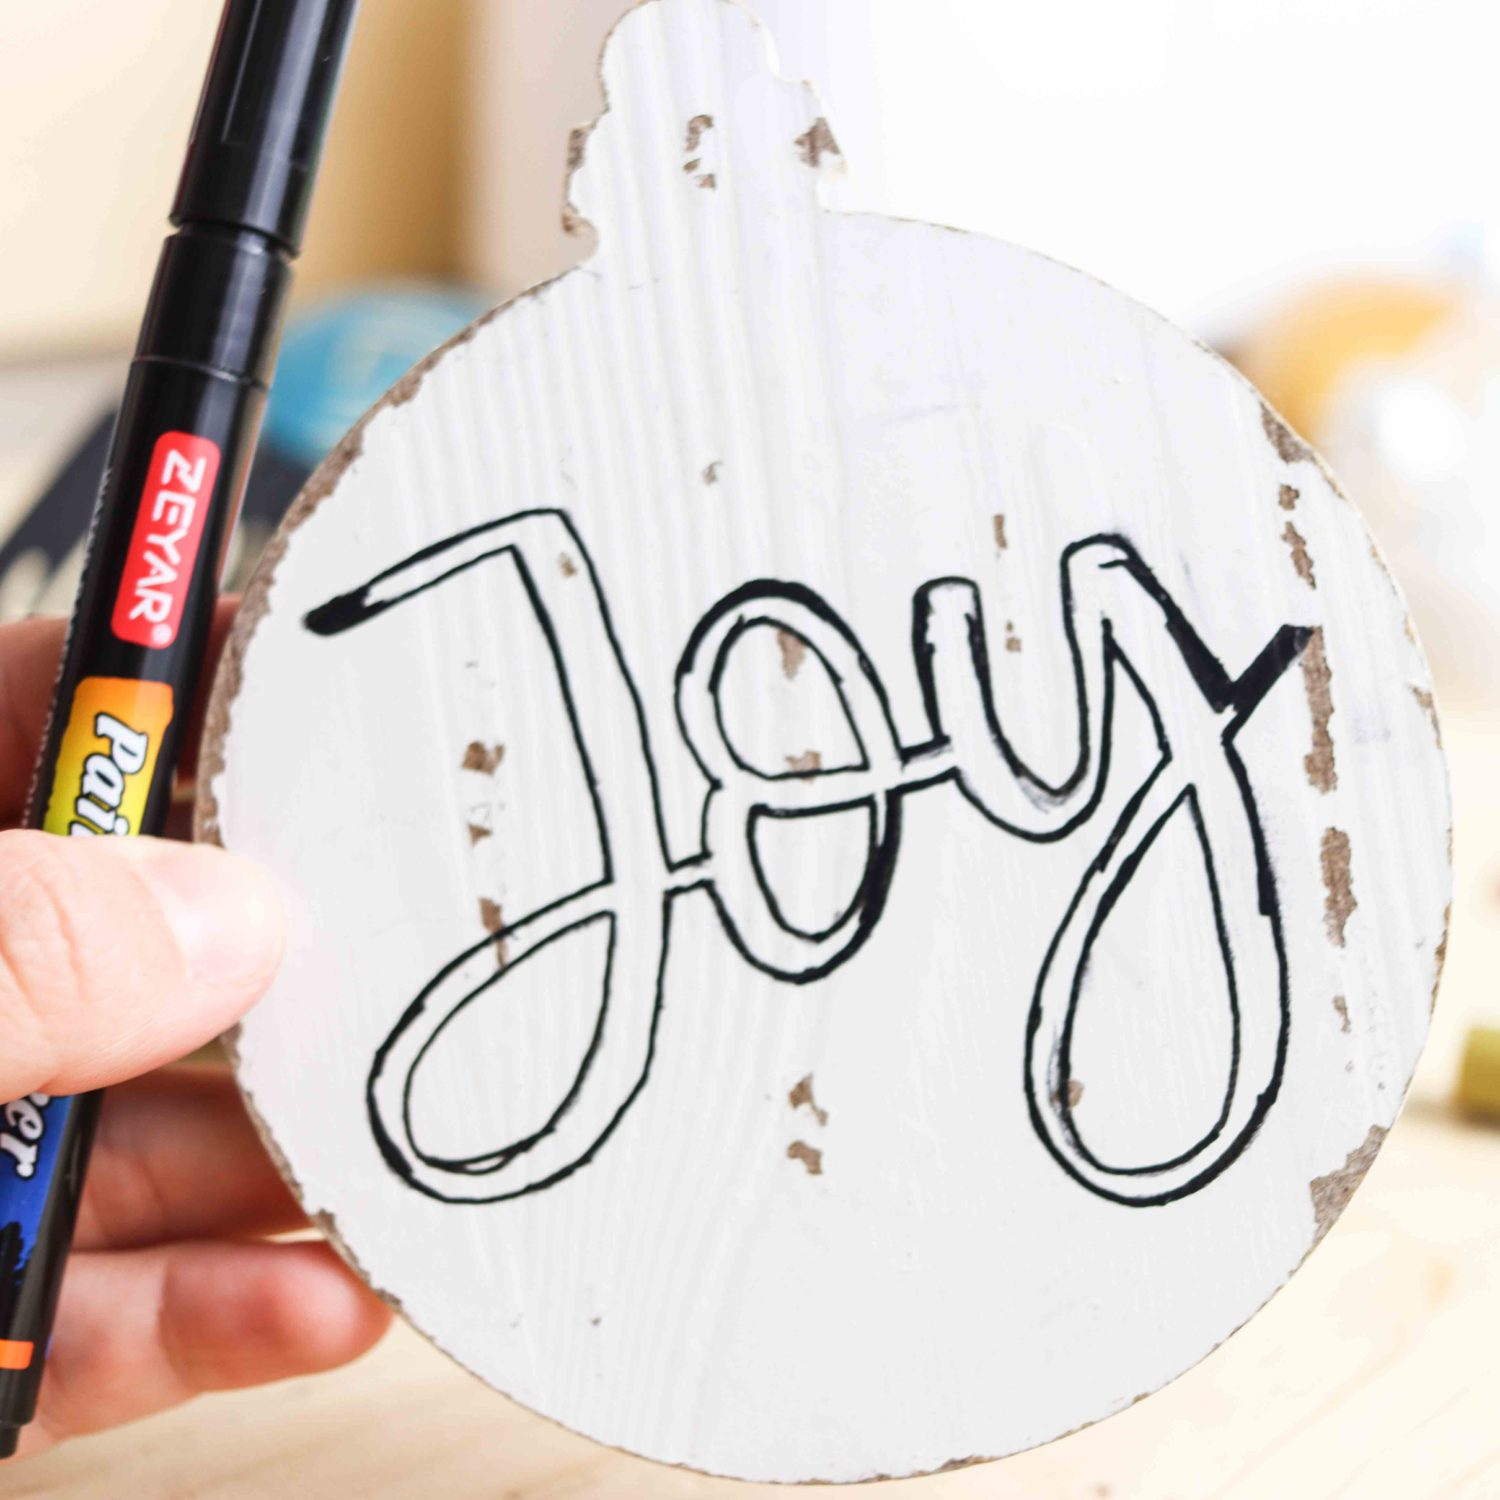 Outlining design on wooden Christmas Ornament